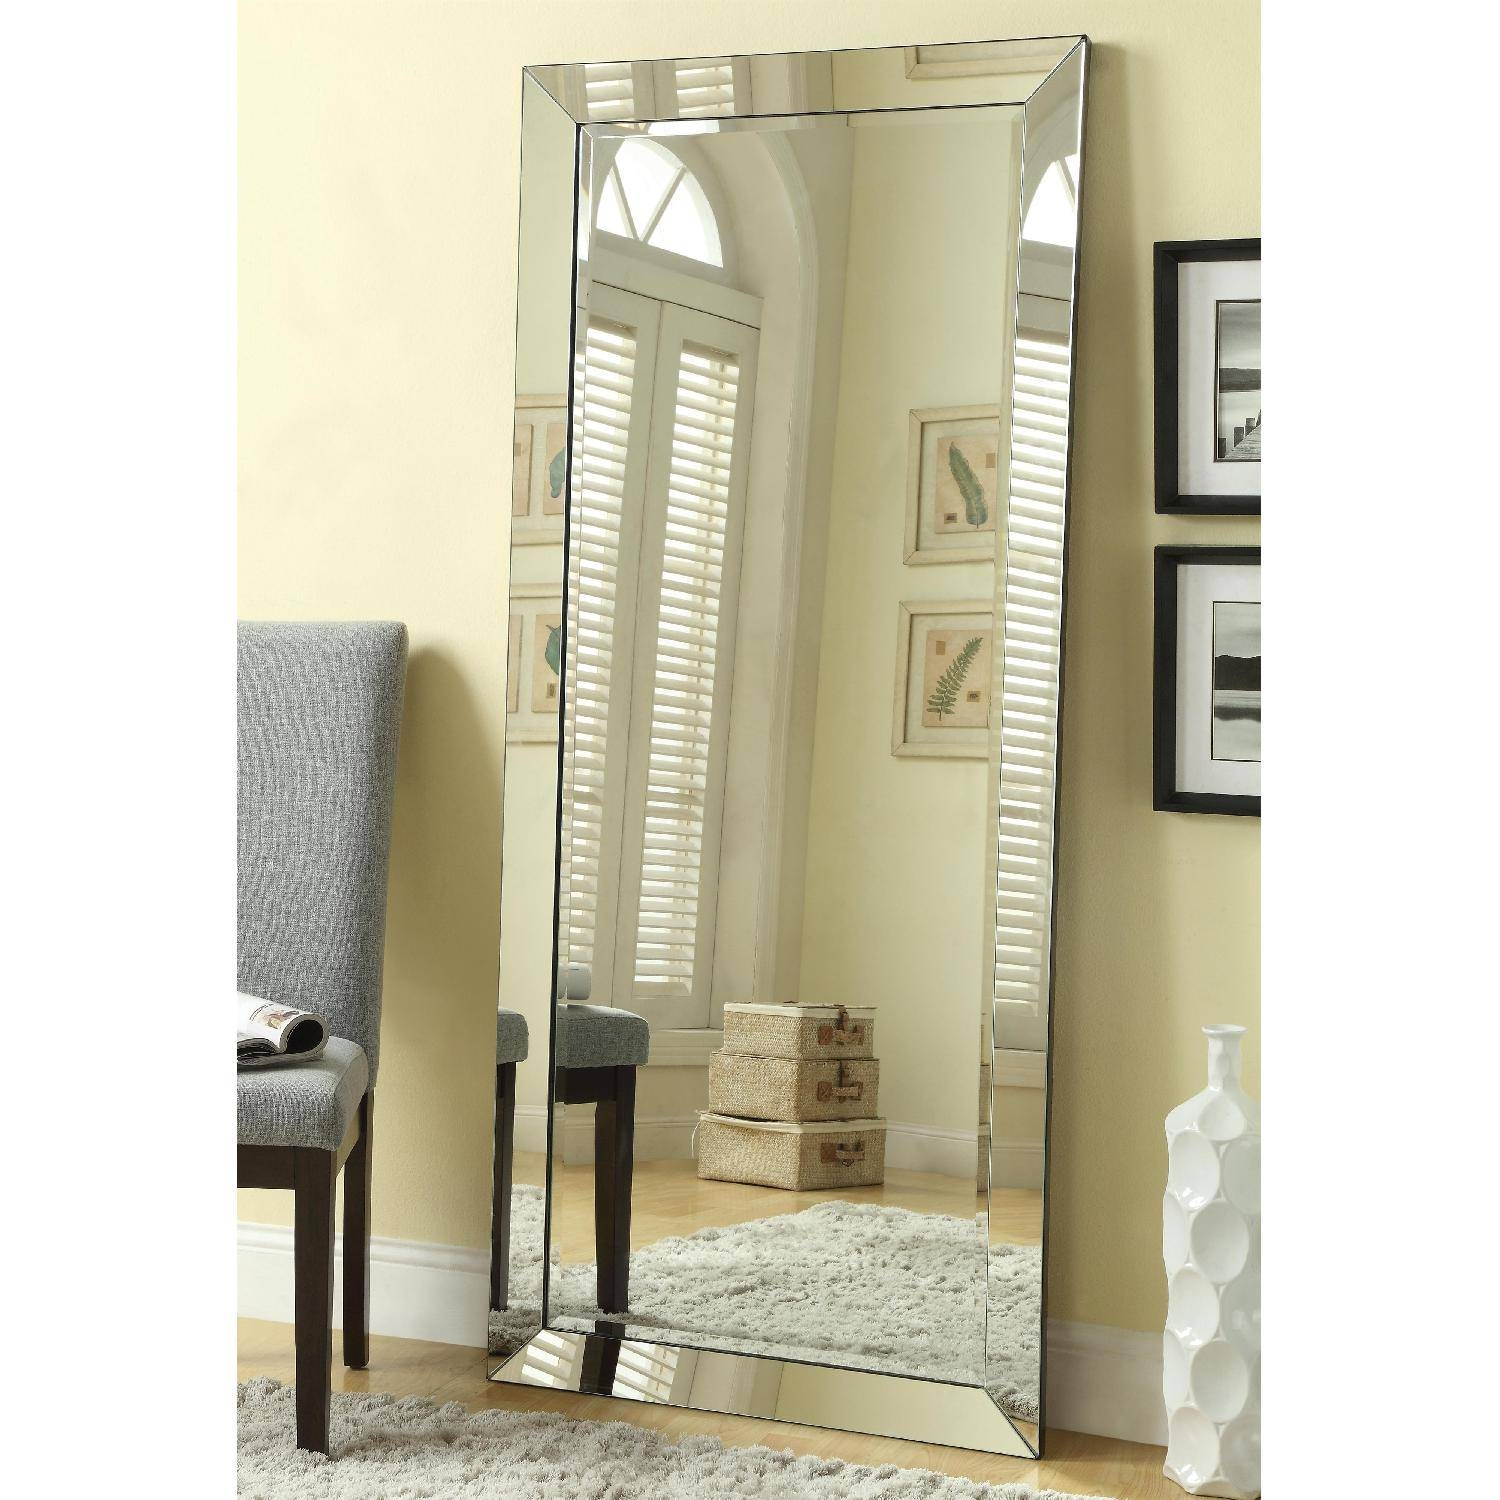 Bedroom Furniture Sets : Hanging Mirror Free Standing Mirror Round Throughout Extra Large Free Standing Mirrors (View 3 of 25)